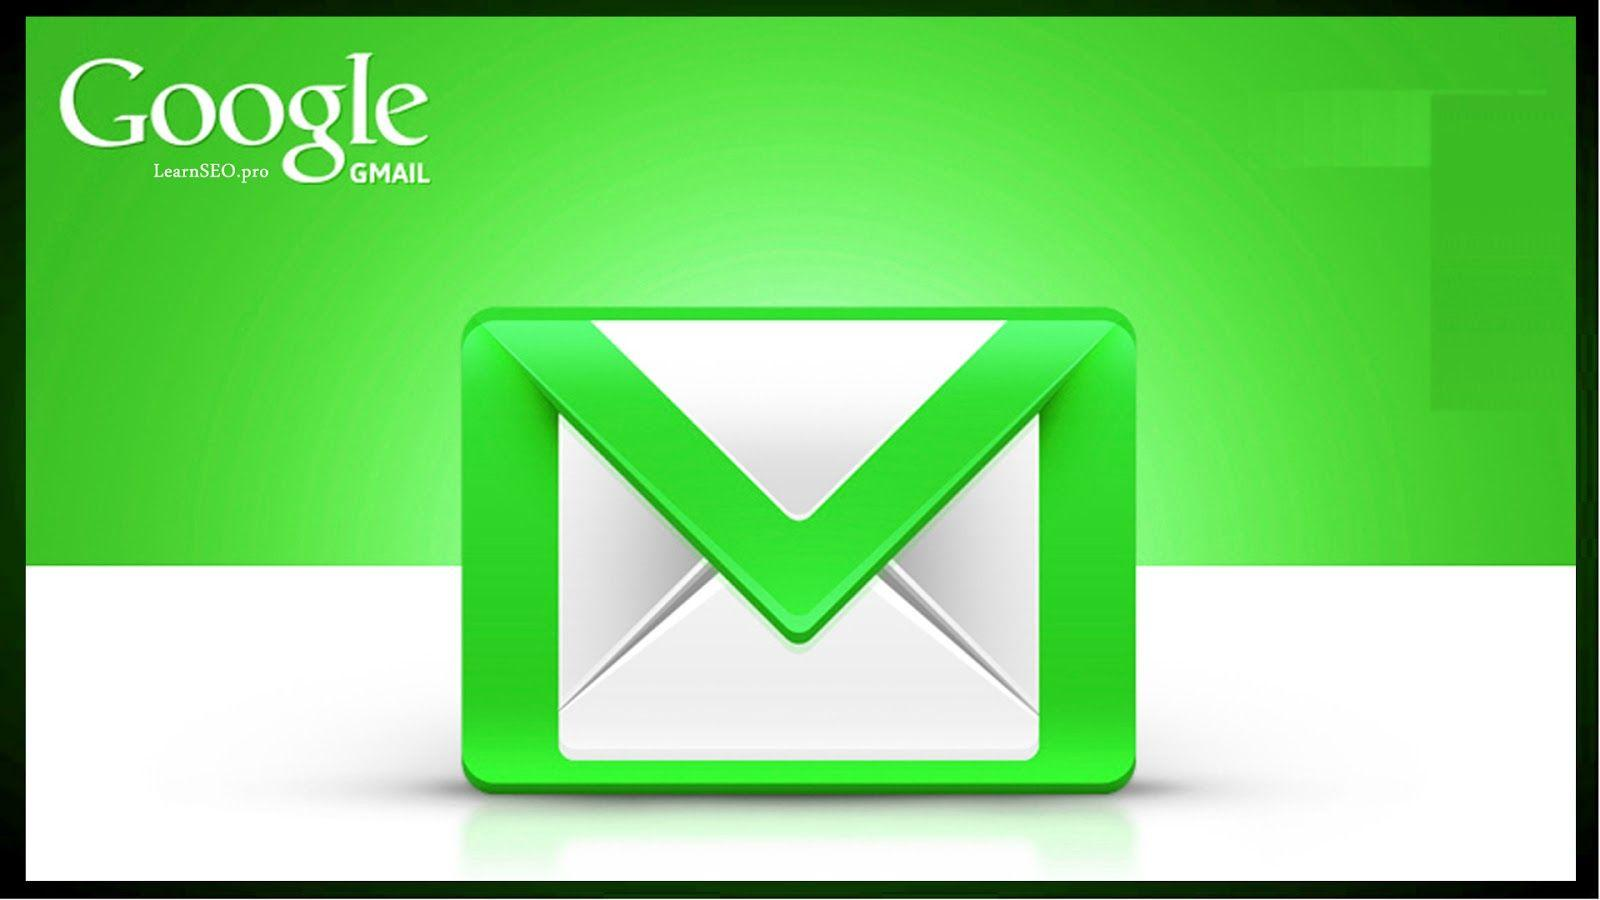 Google Gmail HD Wallpapers | LearnSEO.pro